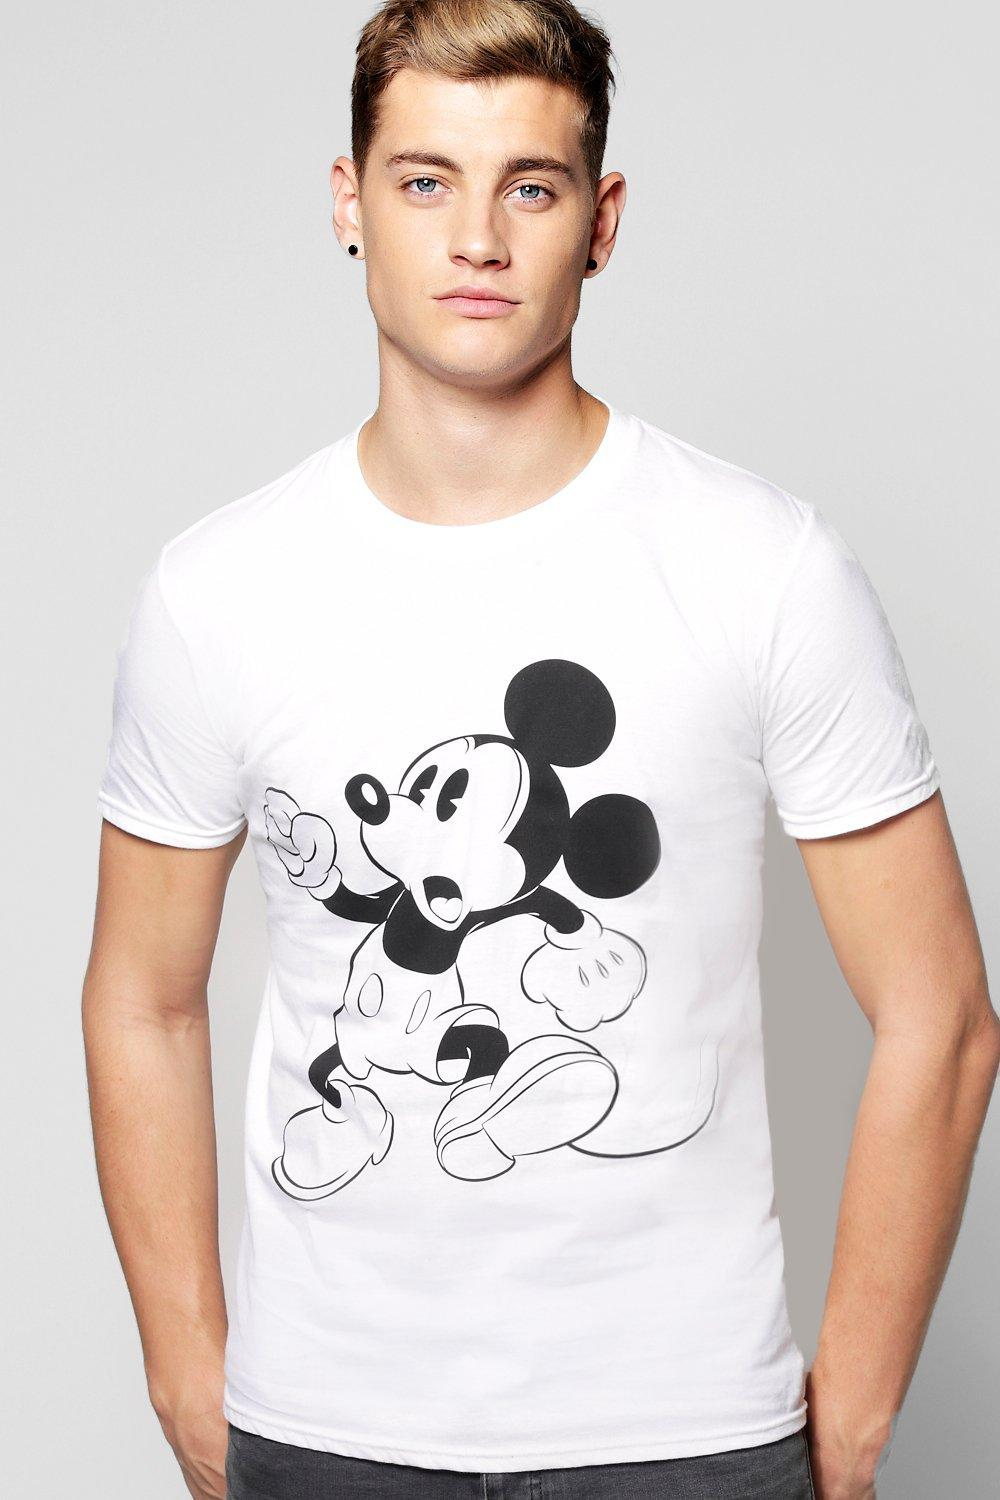 Vintage Mickey Mouse Print T-Shirt. Hover to zoom